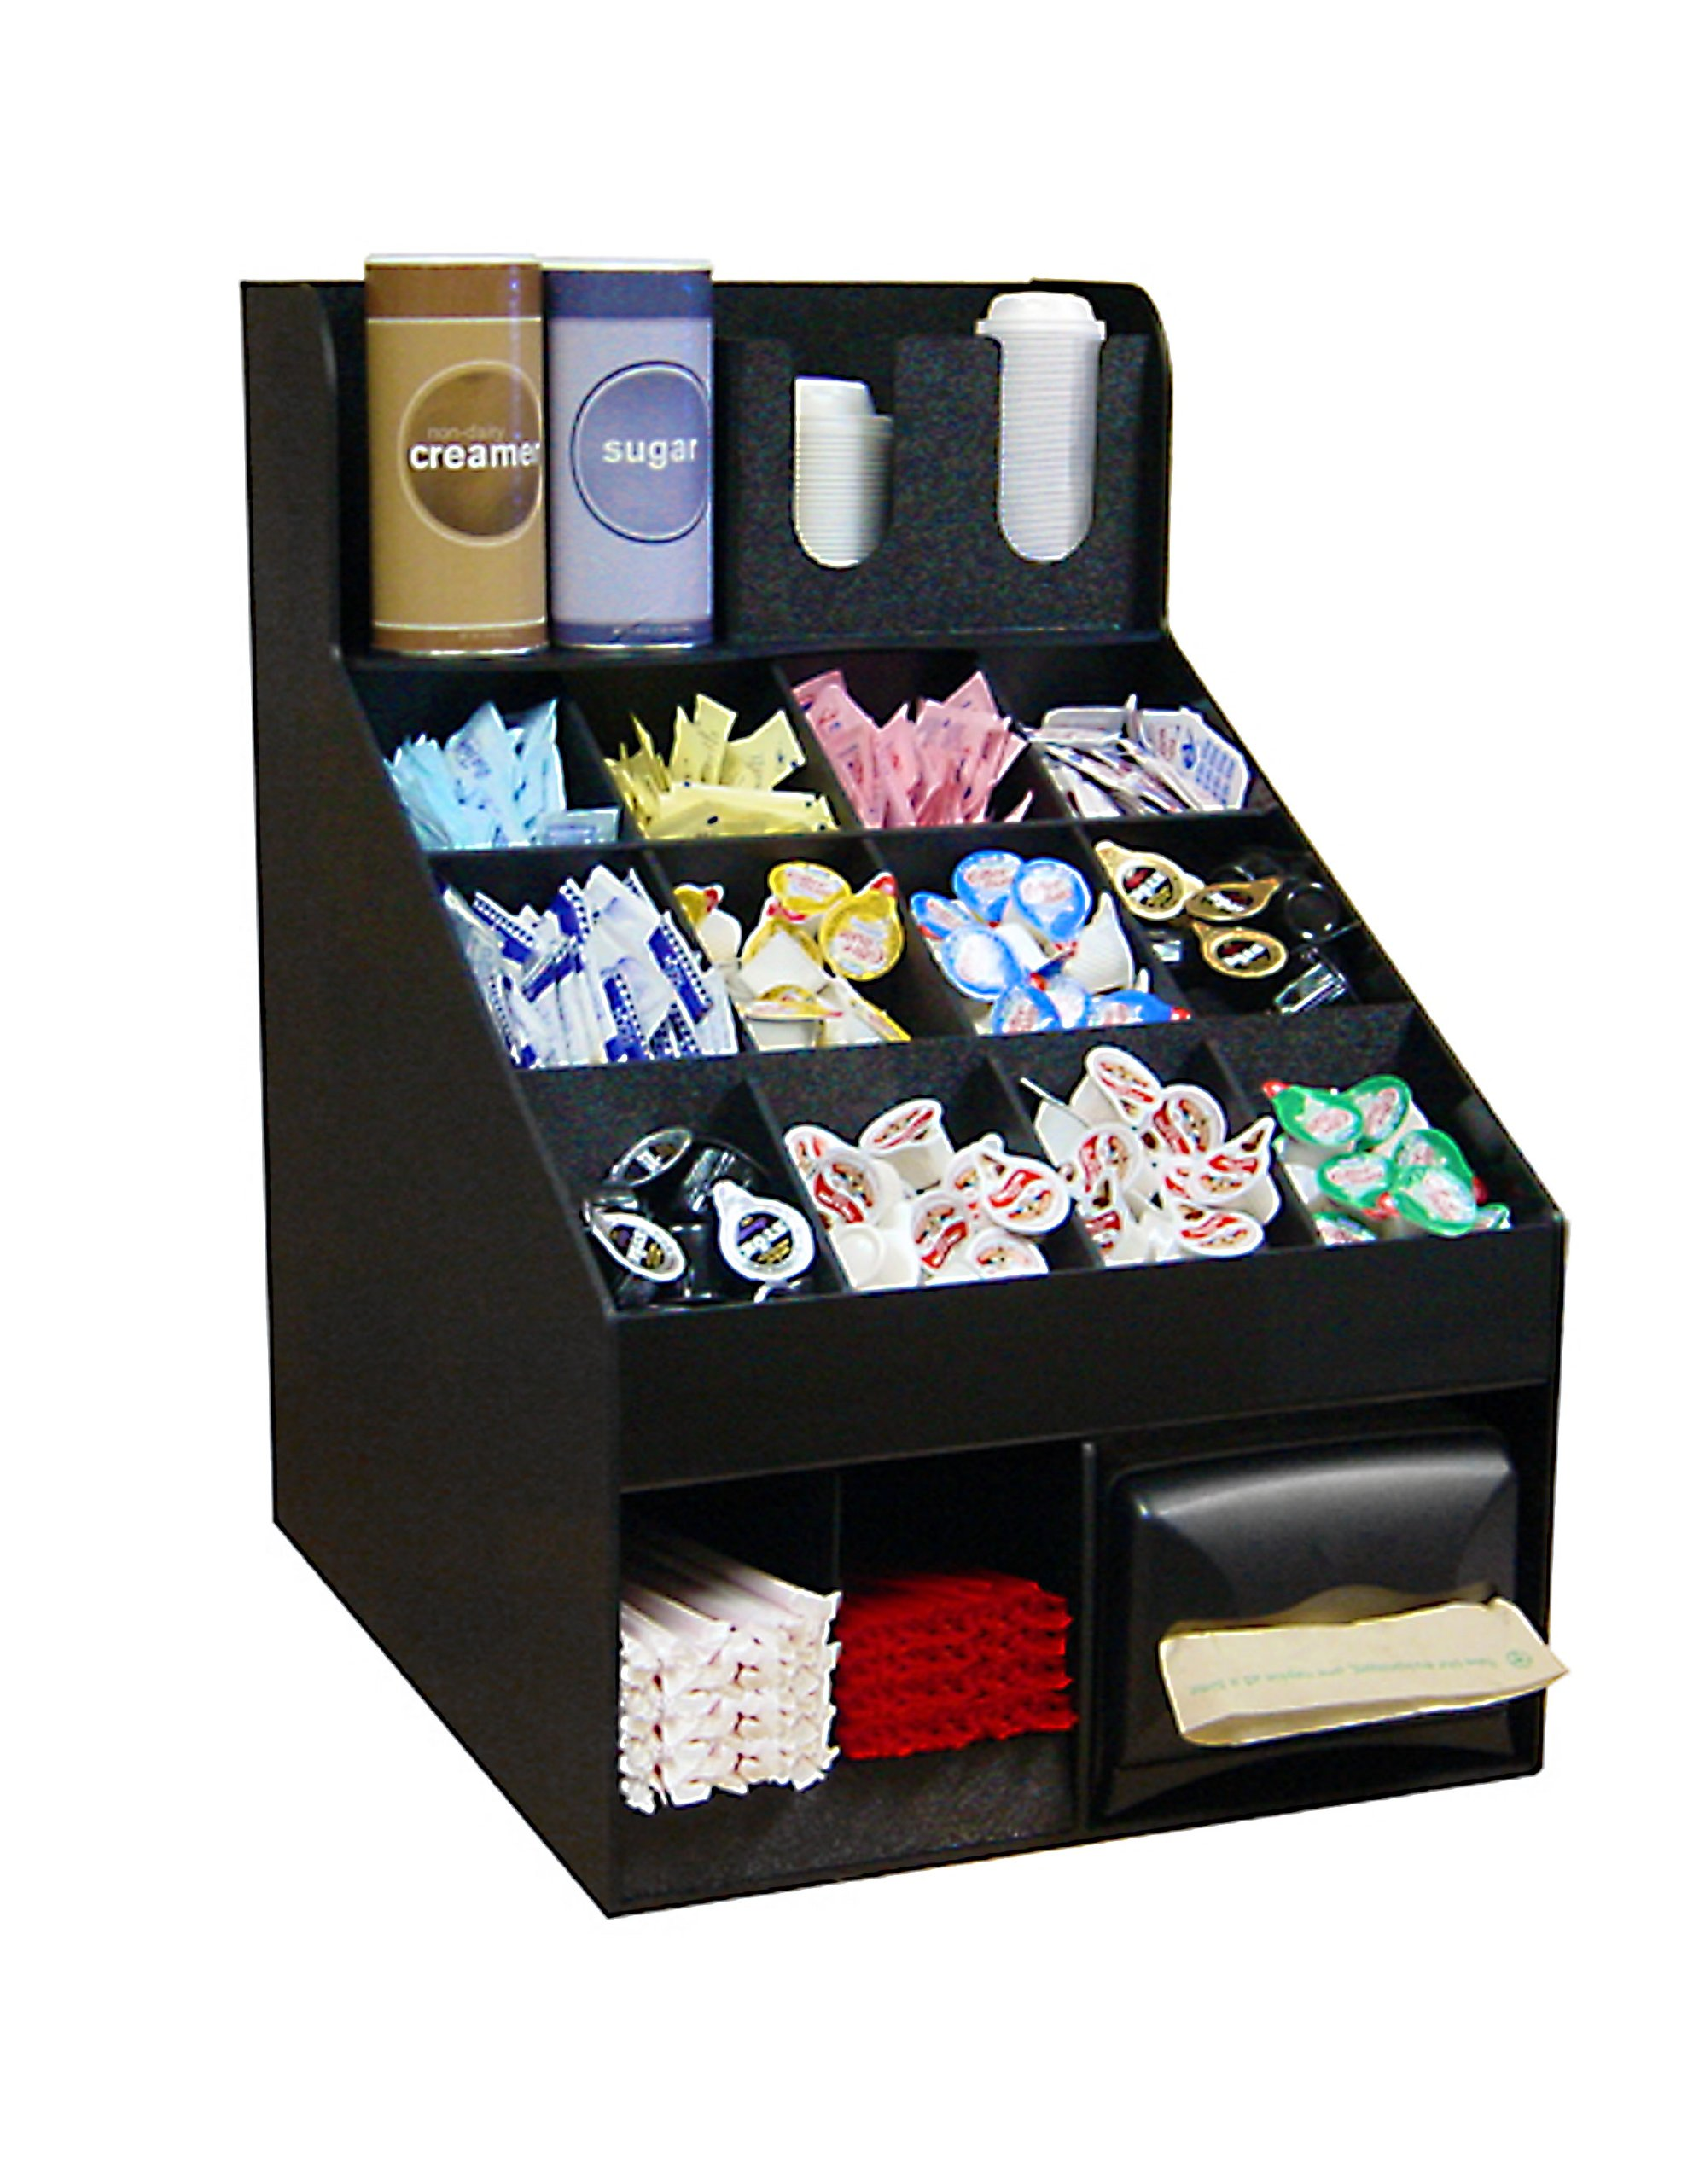 Coffee Condiment Organizer For Large Offices or Convenience Stores. Only 16''Wide & Look what it Holds! 3 Movable Dividers on first shelf. Proudly Made in USA! and Only by PPM.